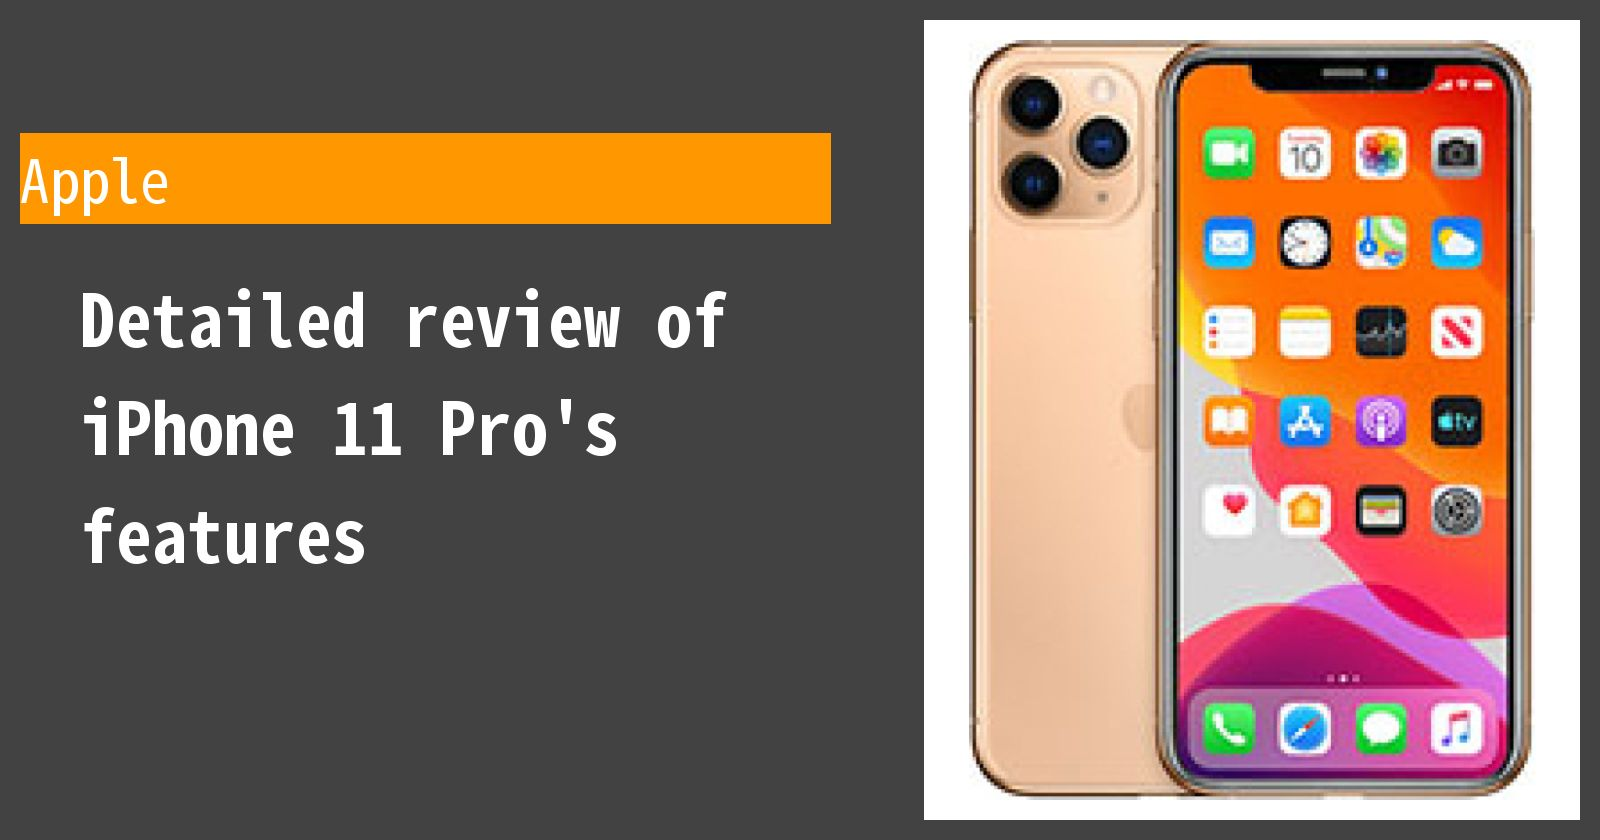 Detailed review of iPhone 11 Pro's features